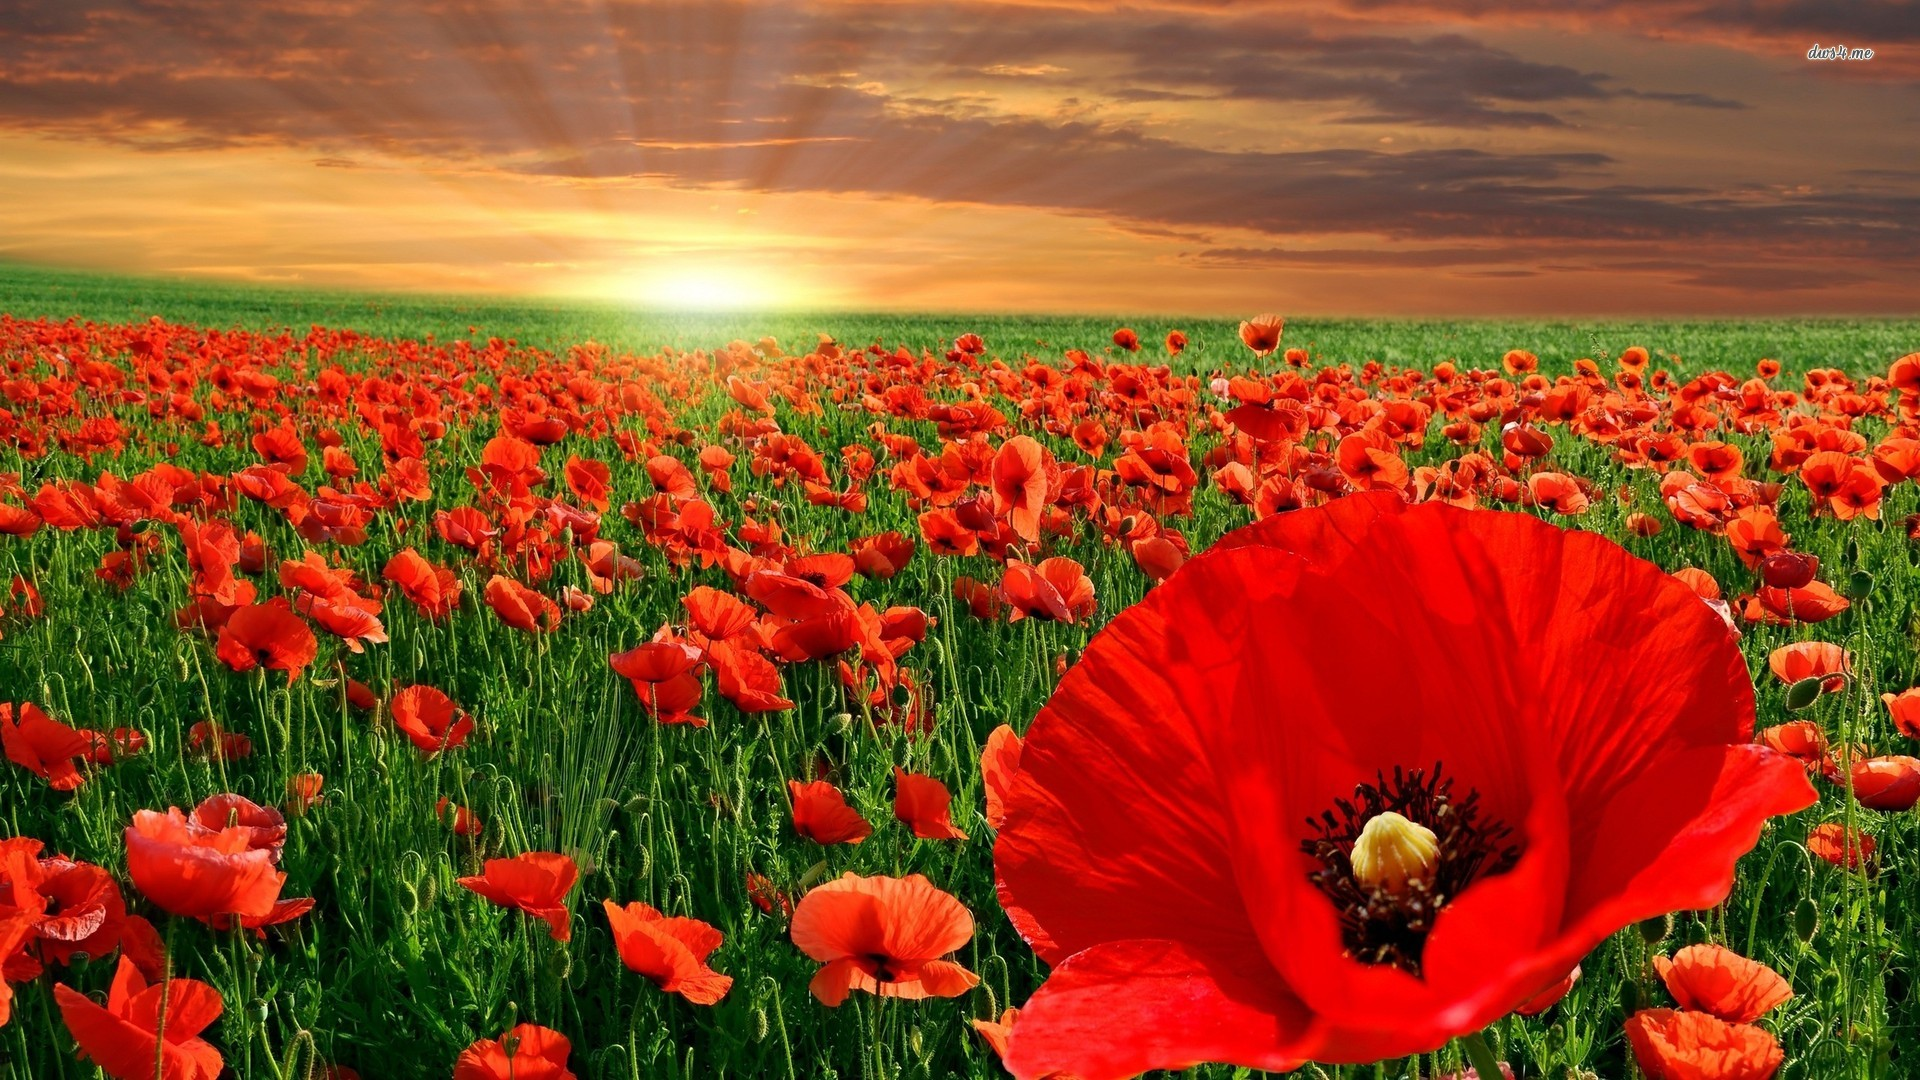 Red Poppy Flower Wallpaper